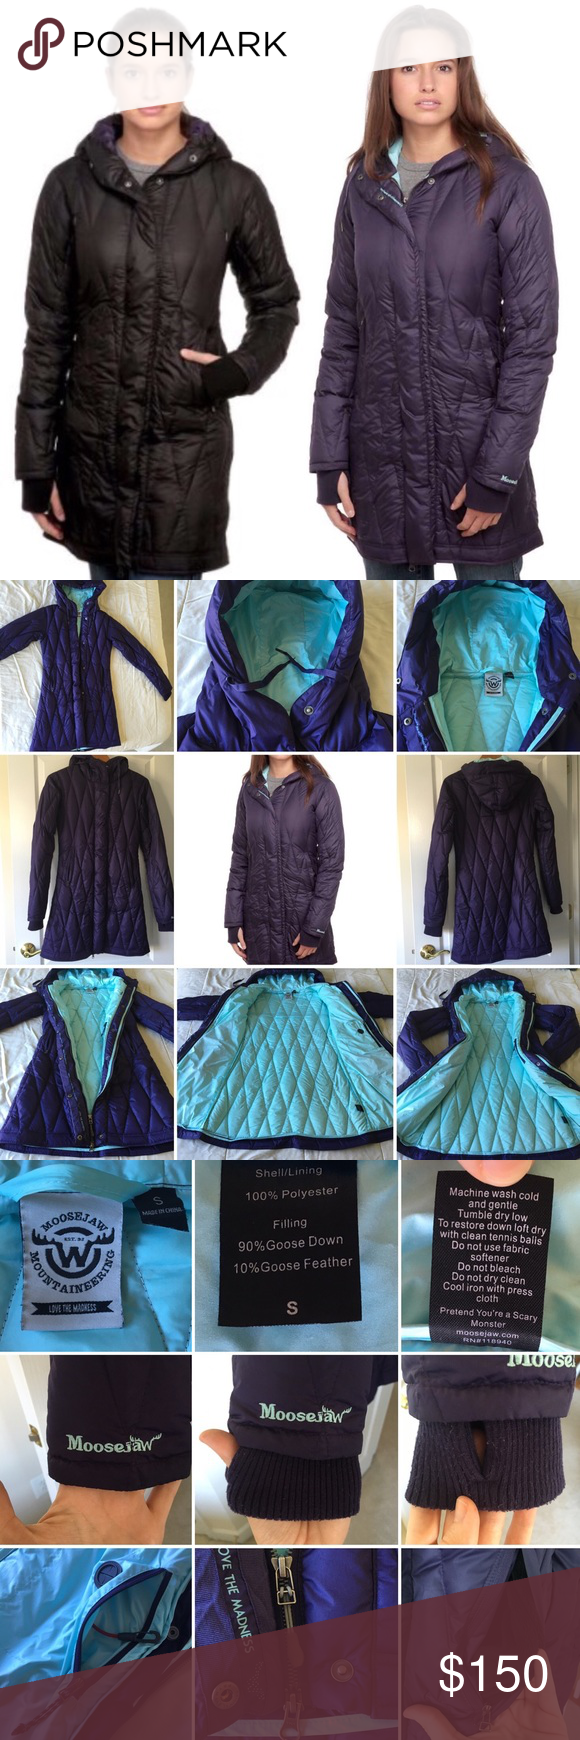 Purple down long puffer jacket moosejaw puffer jackets